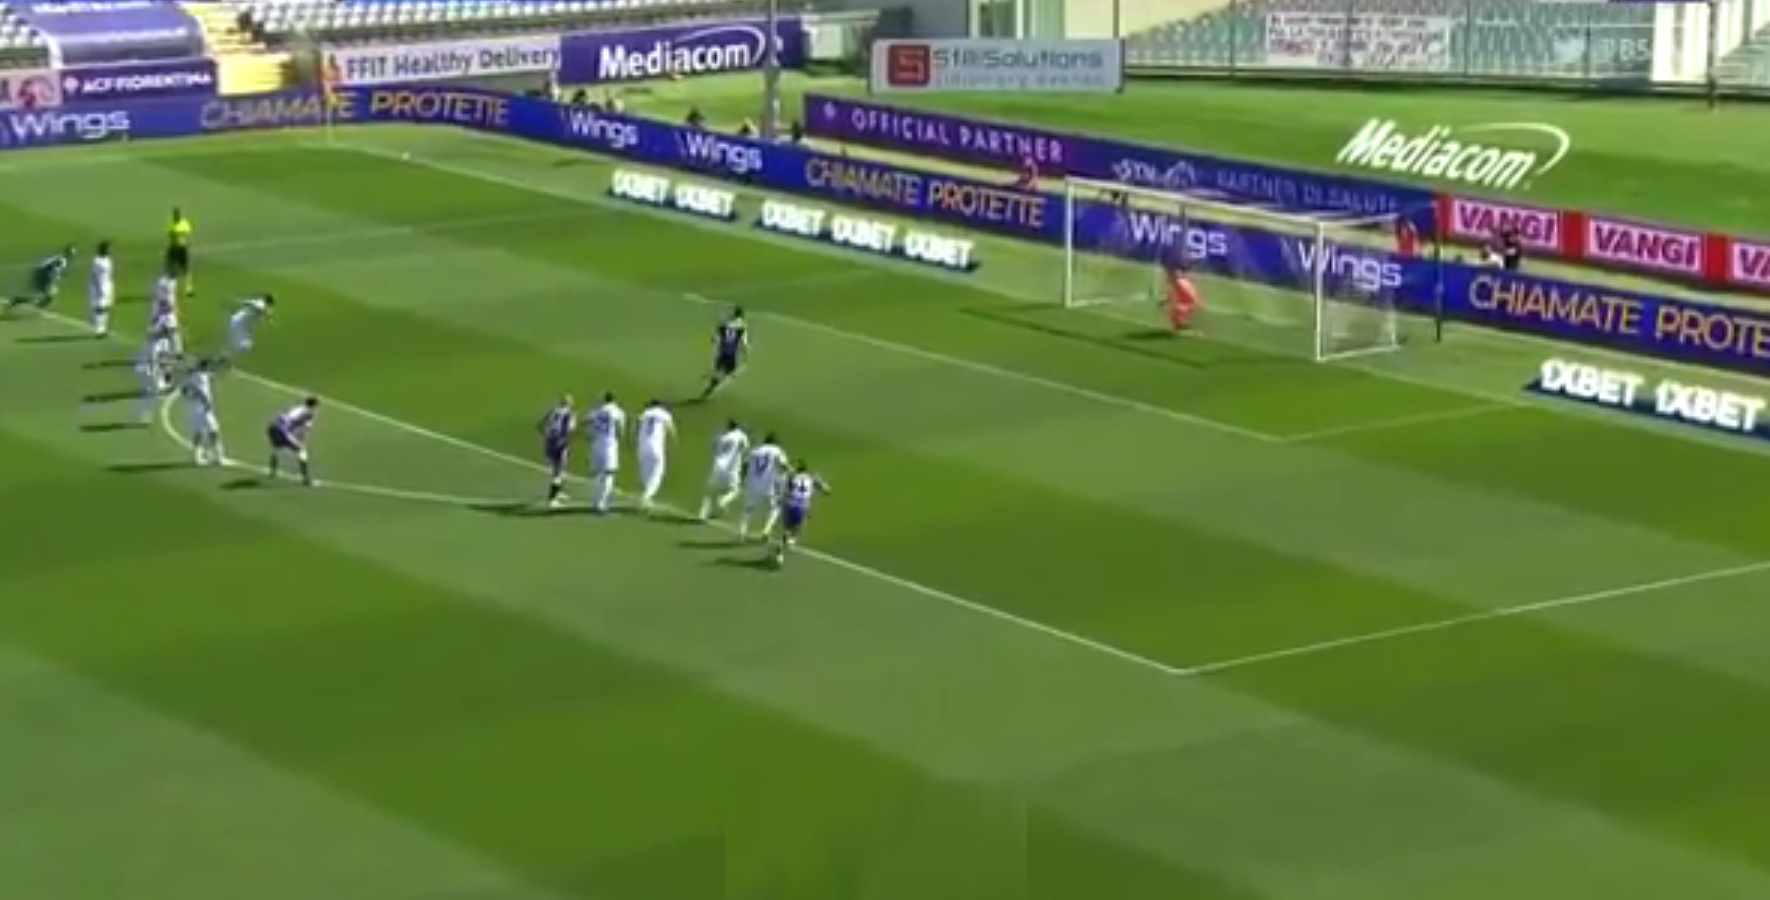 (Video) LFC-linked Vlahovic sends 'keeper wrong way with cheeky panenka pen